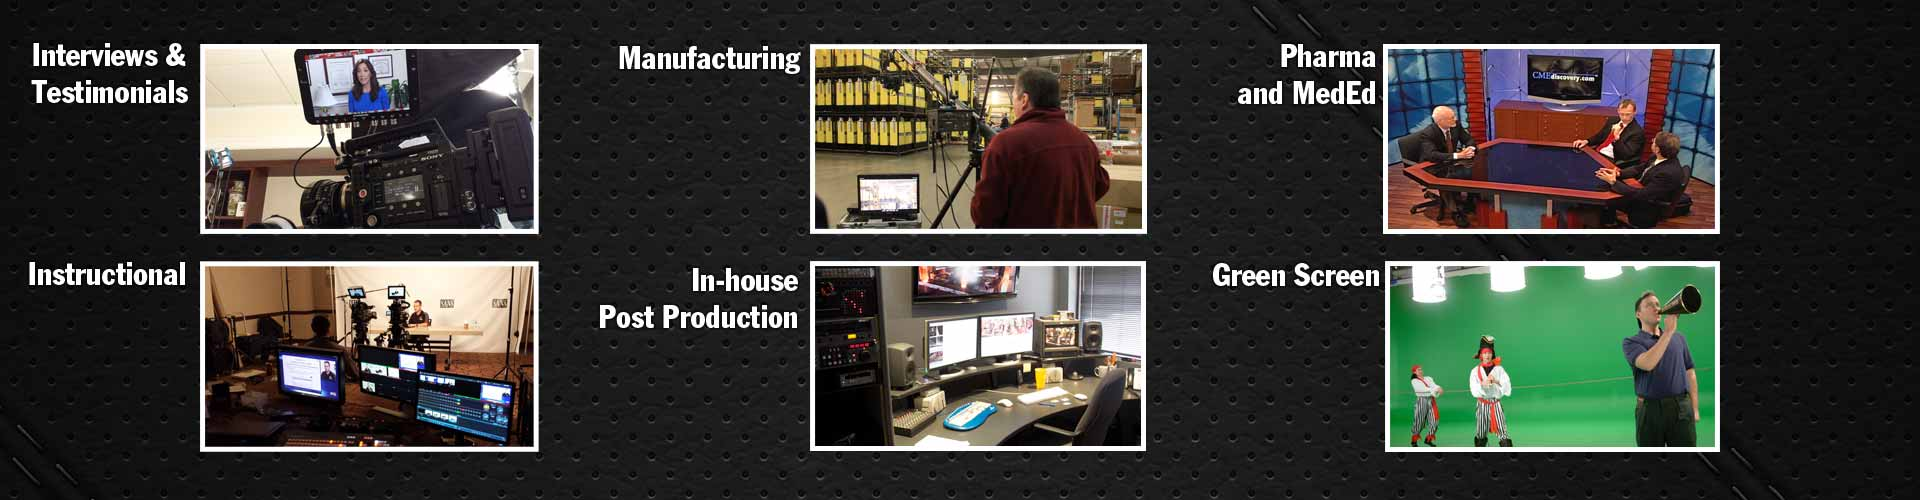 video production, studio, production facility